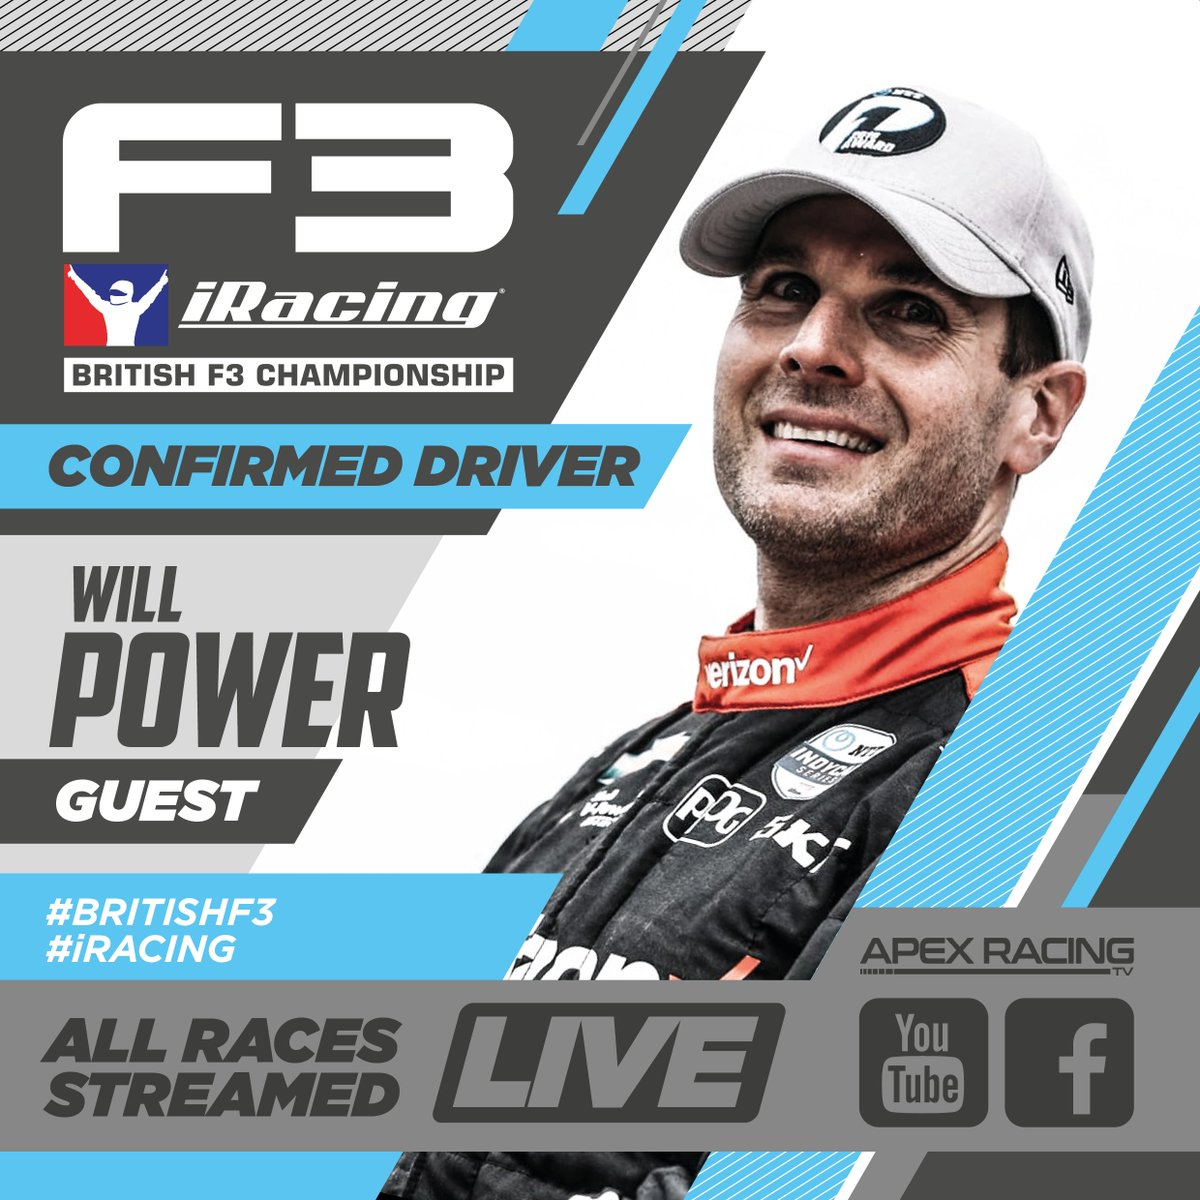 Our guest driver for this Sundays British F3 iRacing Championship visit to Silverstones Grand Prix circuit is IndyCar star and 2018 Indianapolis 500 champion @12WillPower, who raced in the original British F3 in 2003/4. You wont want to miss this one! #iracing